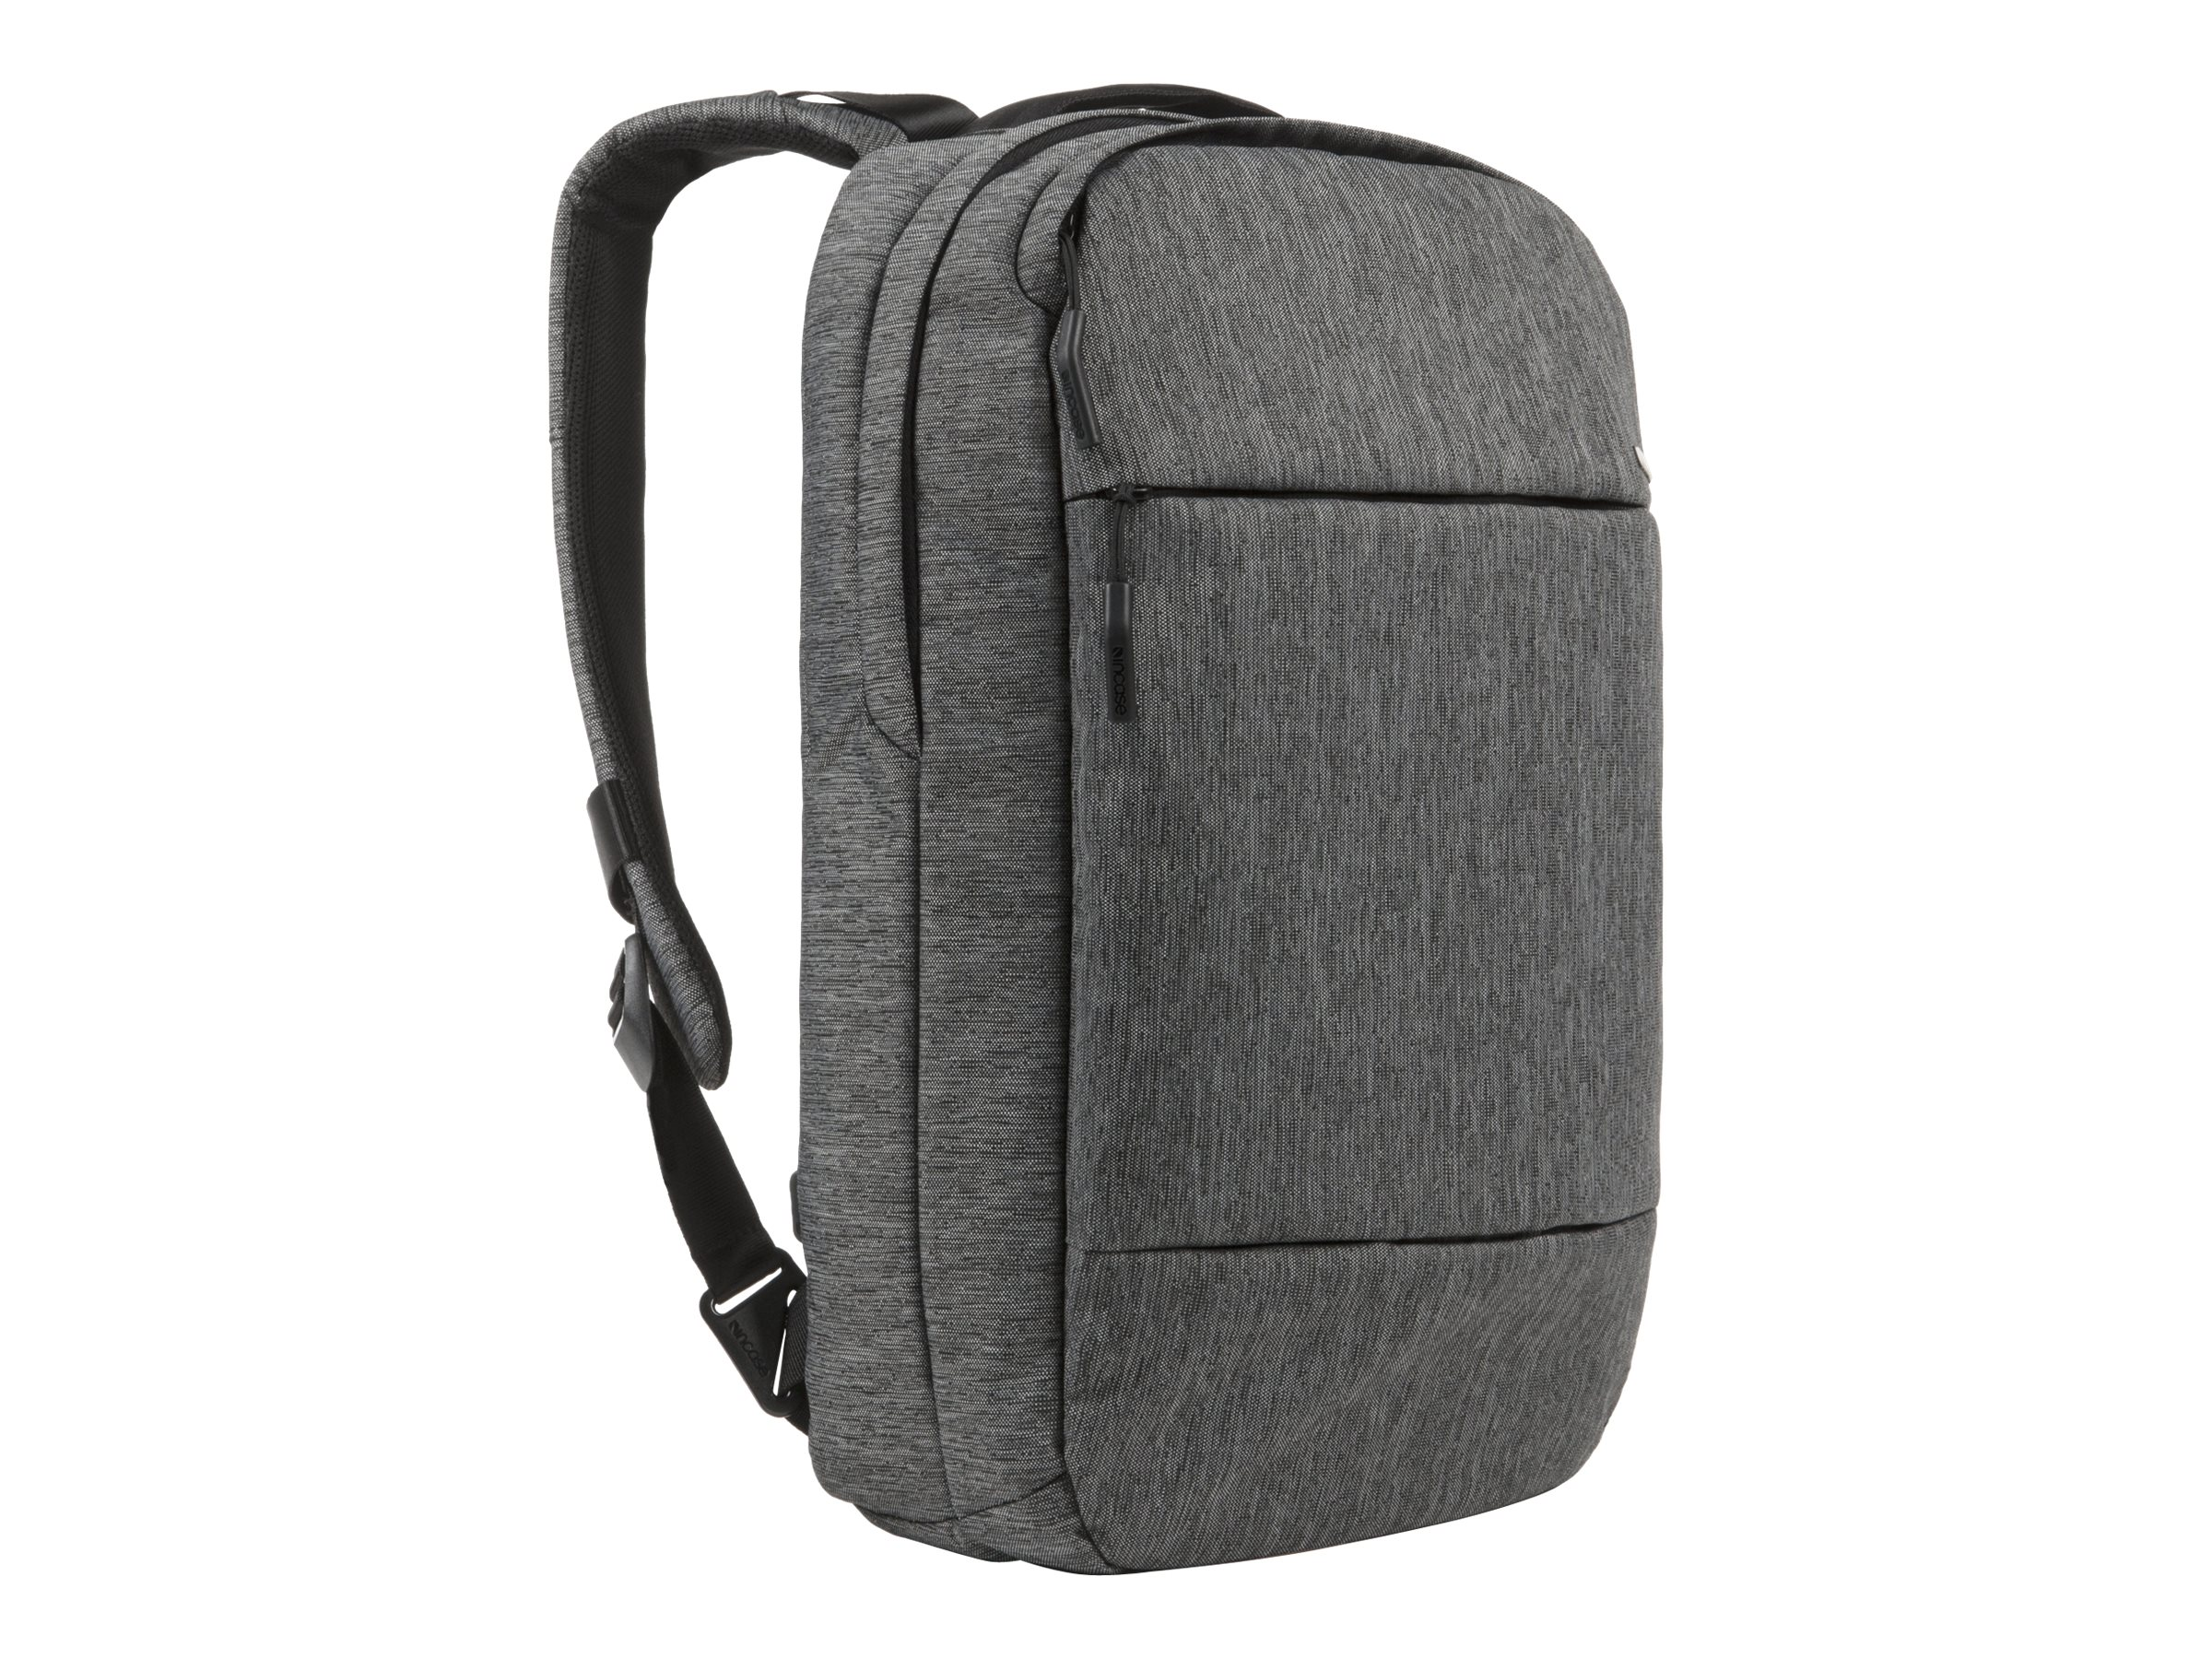 Incipio Incase City Compact Backpack, Heather Black Gunmetal Gray